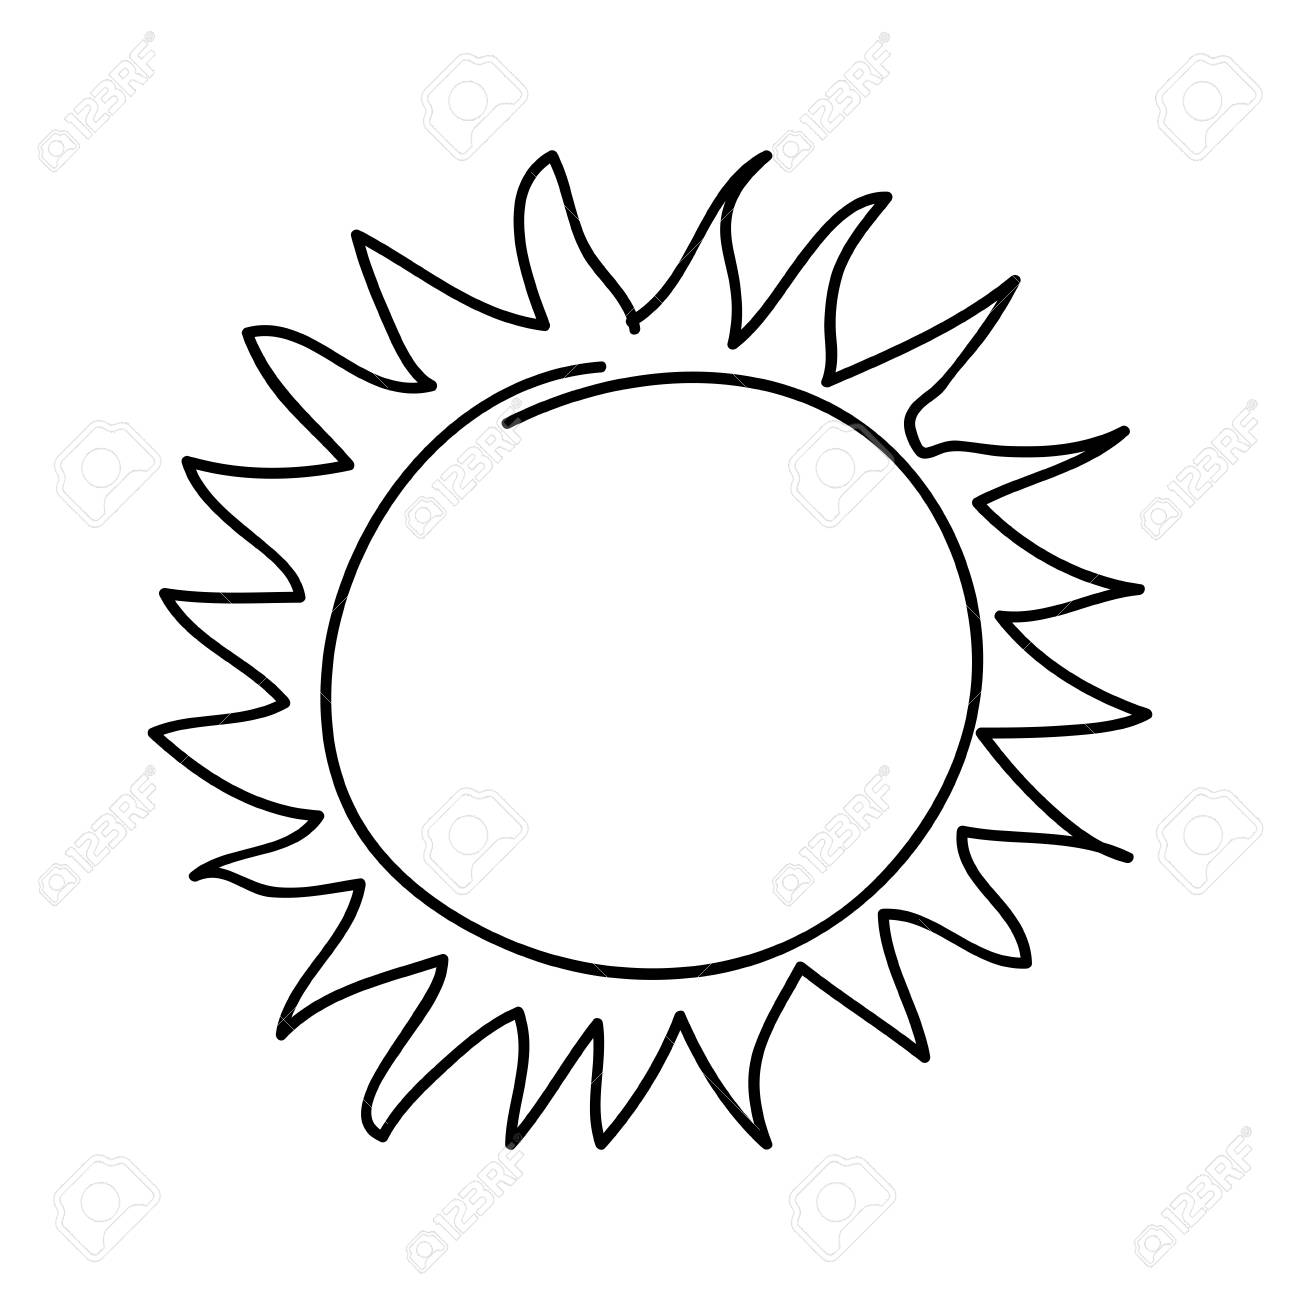 Sun Drawing Free Download Clip Art.